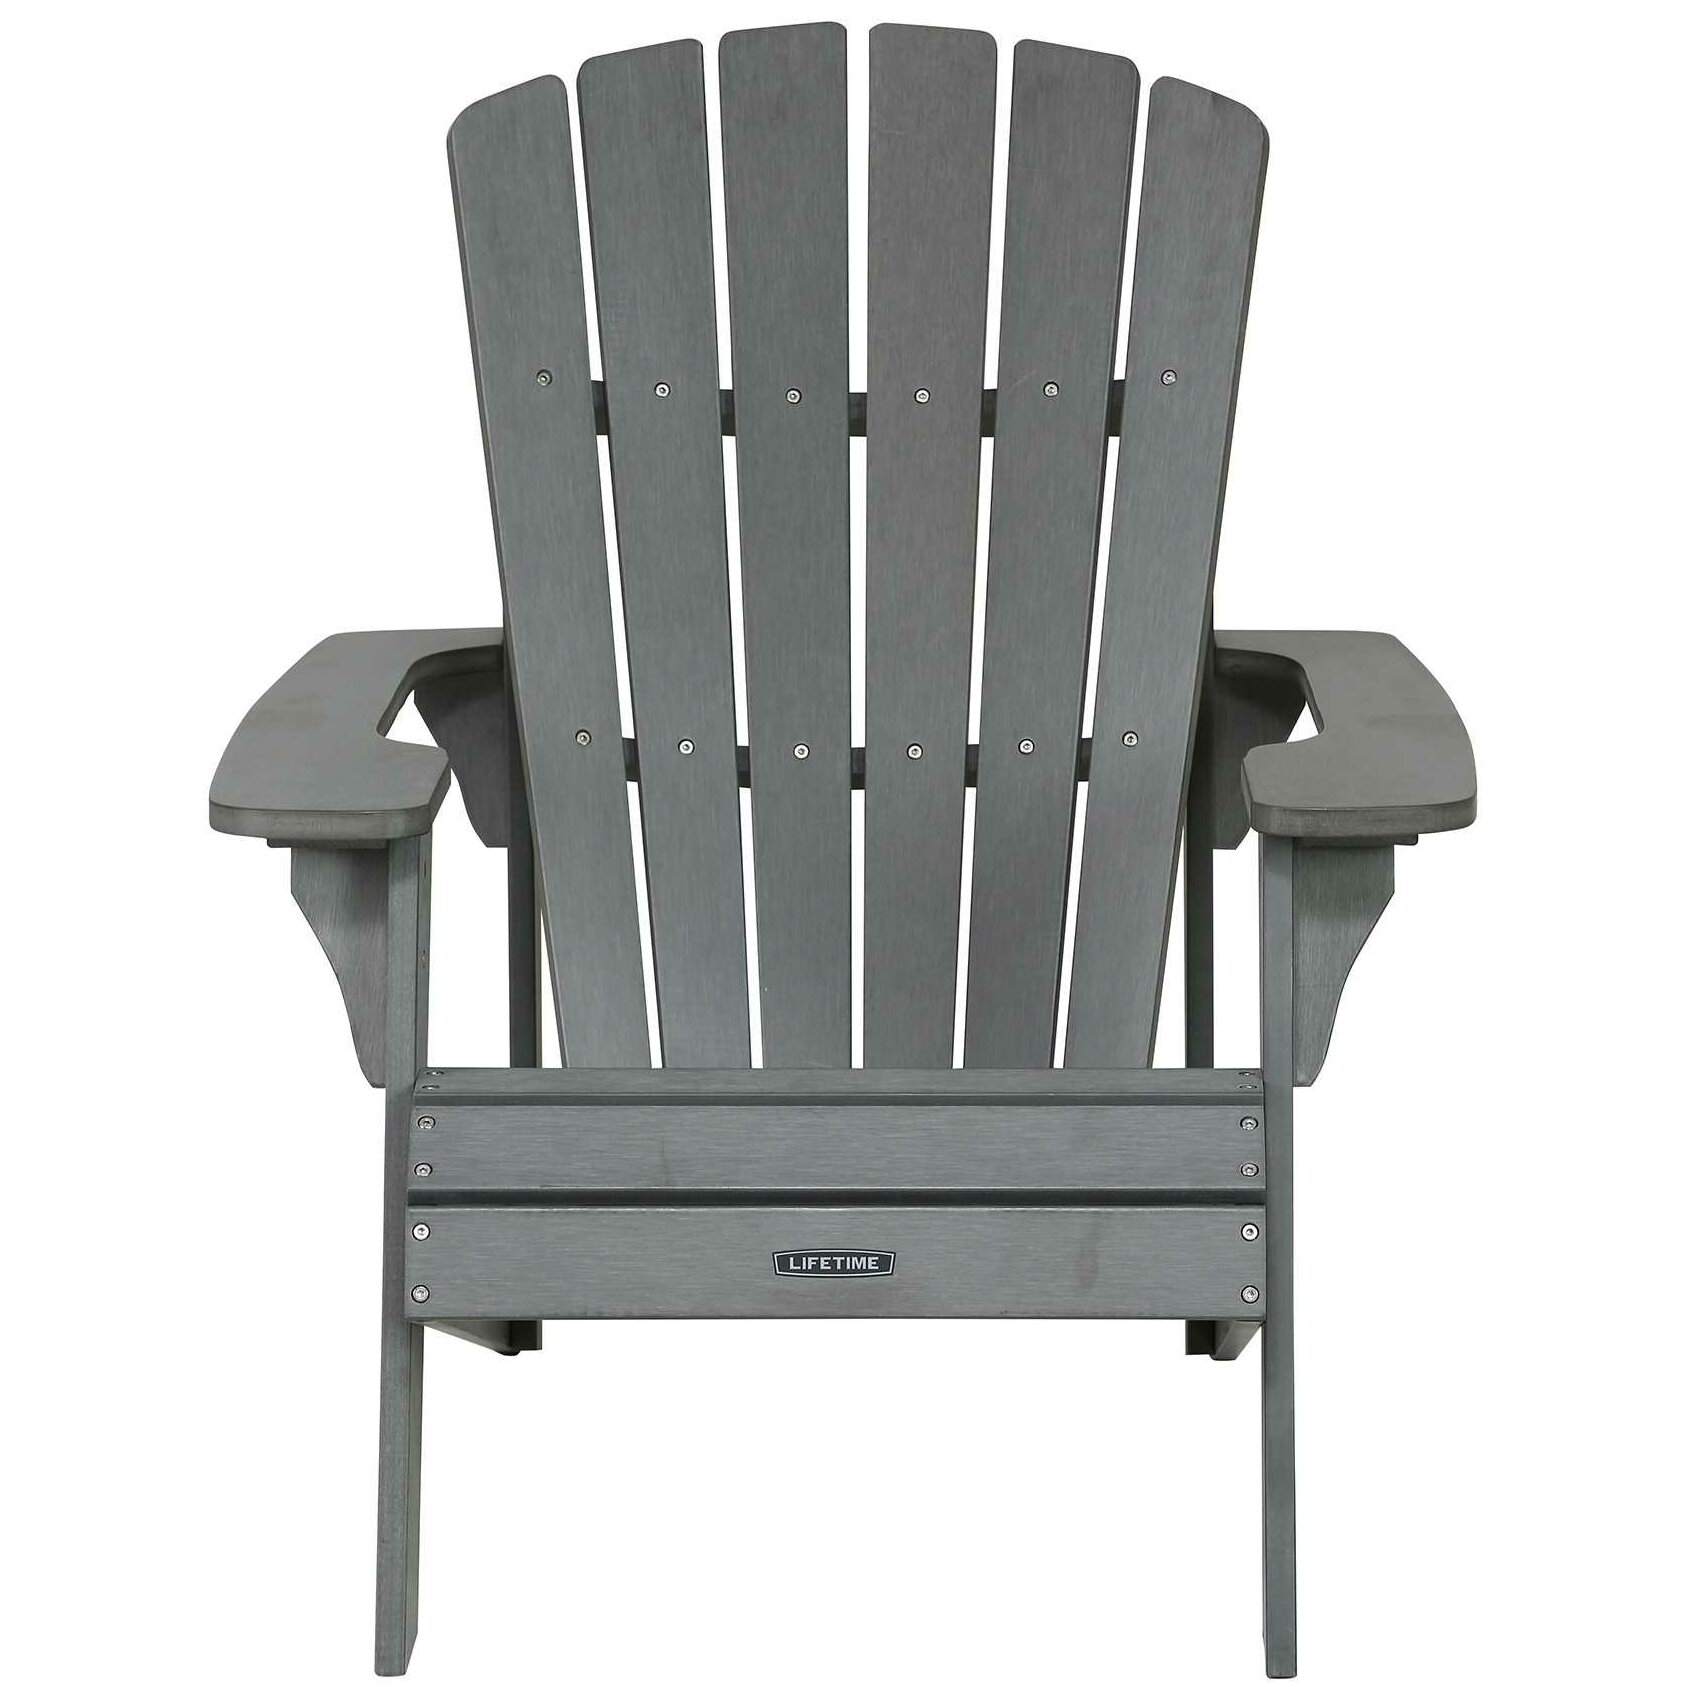 Incroyable Lifetime Plastic Adirondack Chair U0026 Reviews | Wayfair